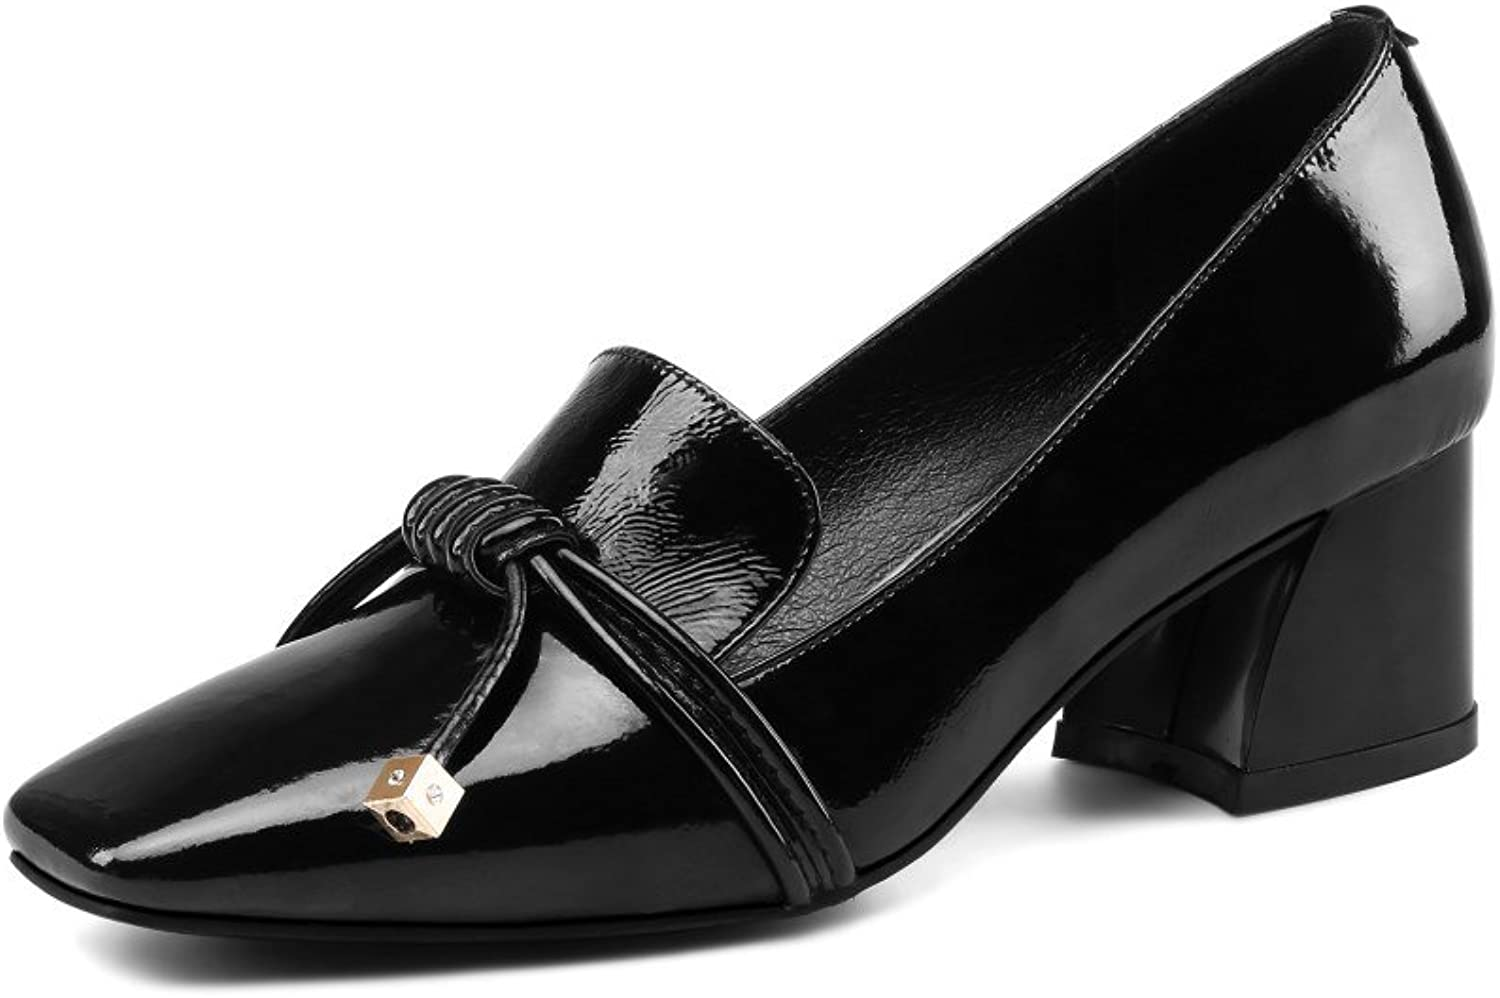 Nine Seven Patent Leather Women's Square Toe Mid Chunky Heel Slip On Handmade Gorgeous Pump shoes